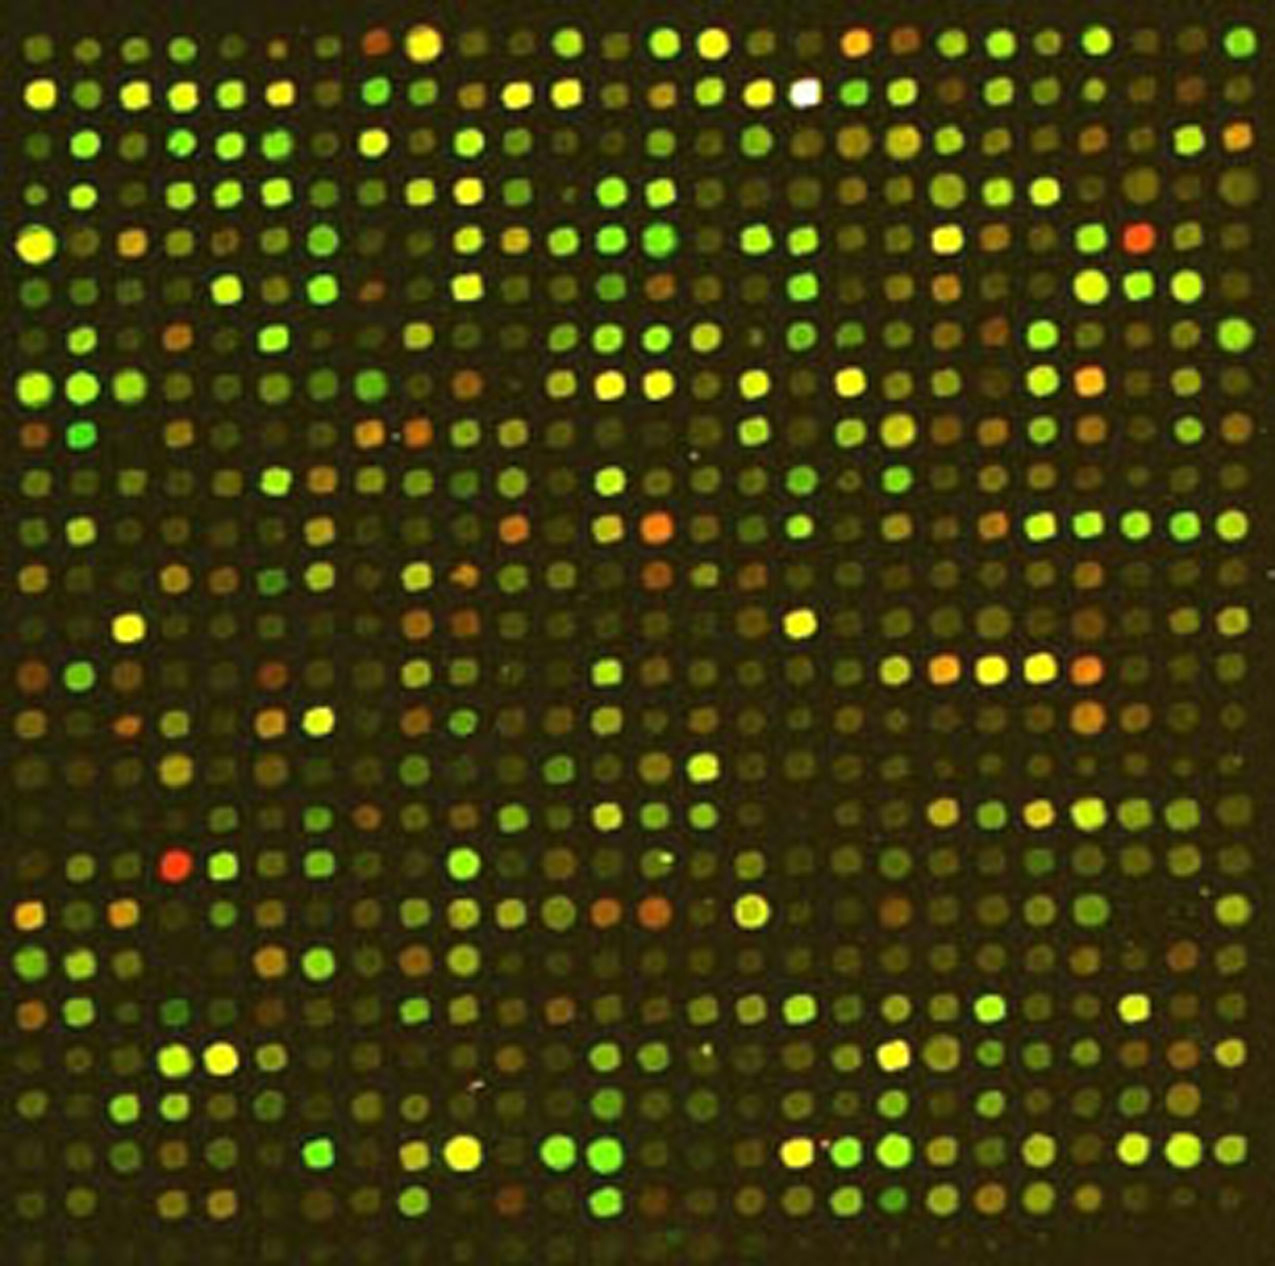 dna microarray mien